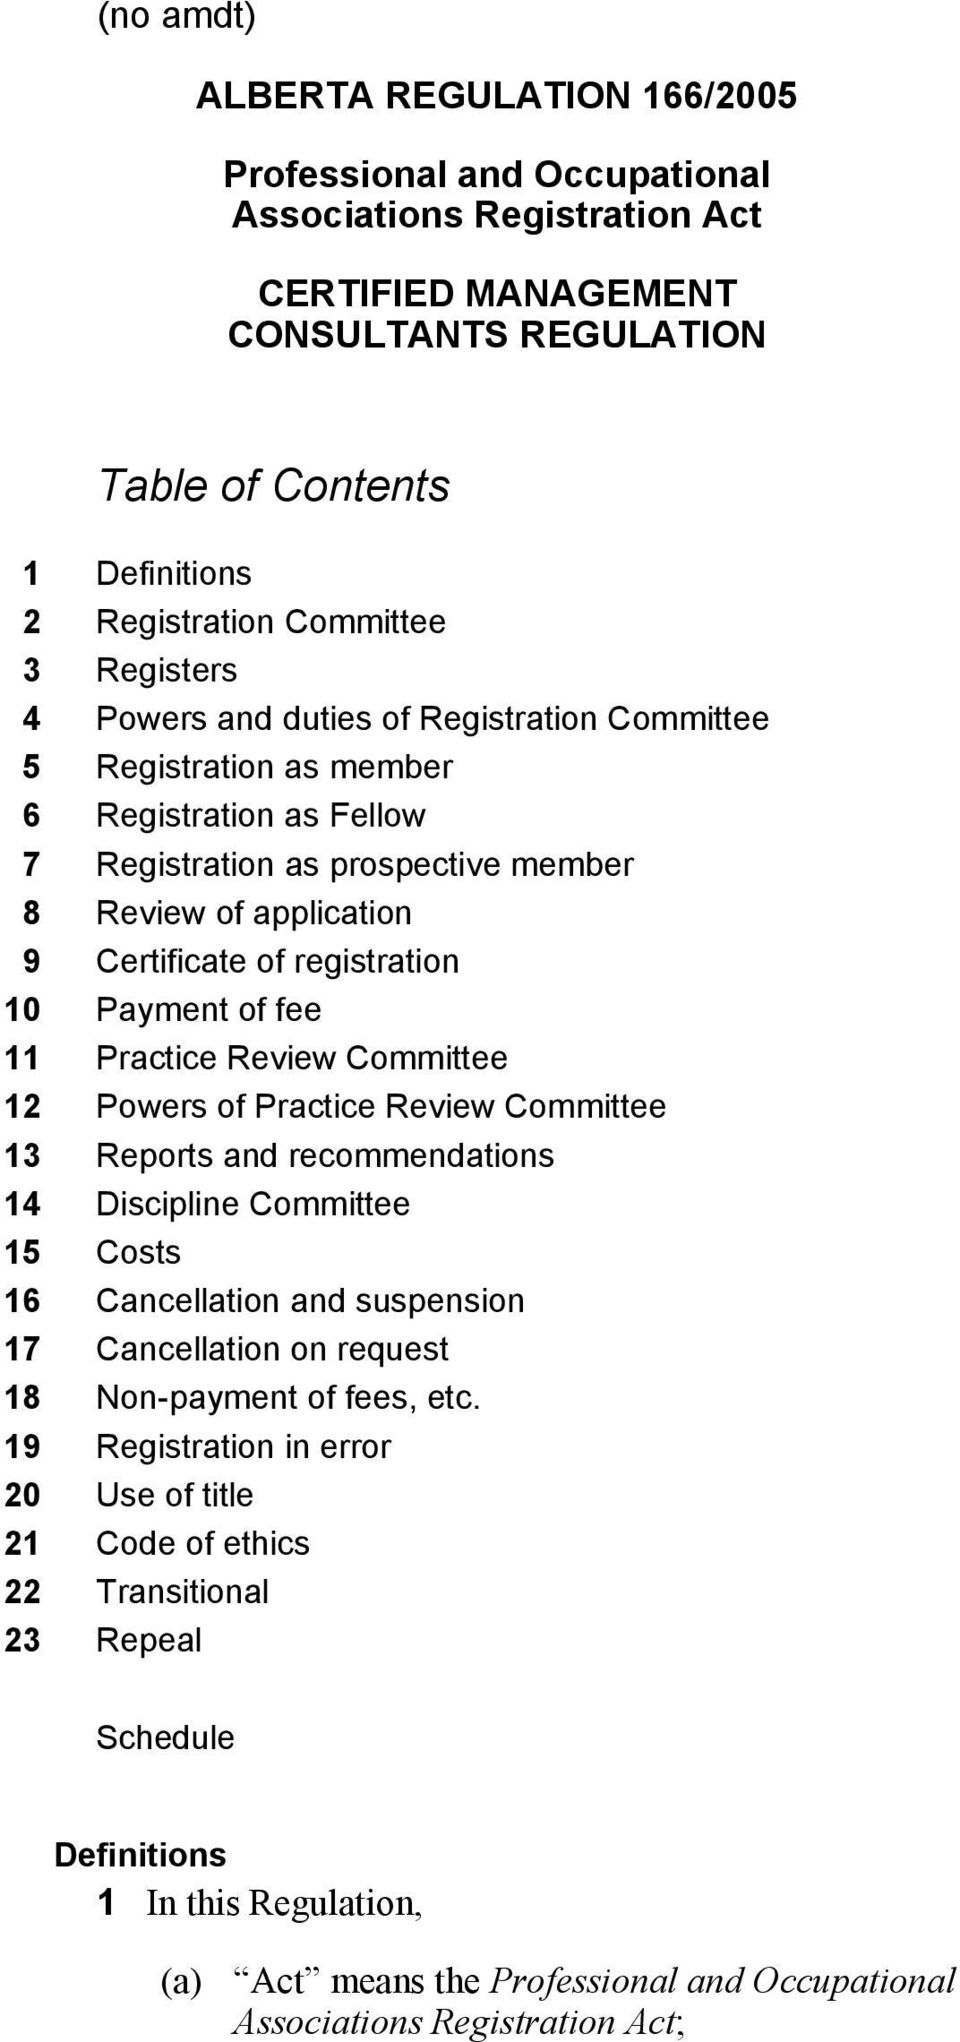 10 Payment of fee 11 Practice Review Committee 12 Powers of Practice Review Committee 13 Reports and recommendations 14 Discipline Committee 15 Costs 16 Cancellation and suspension 17 Cancellation on